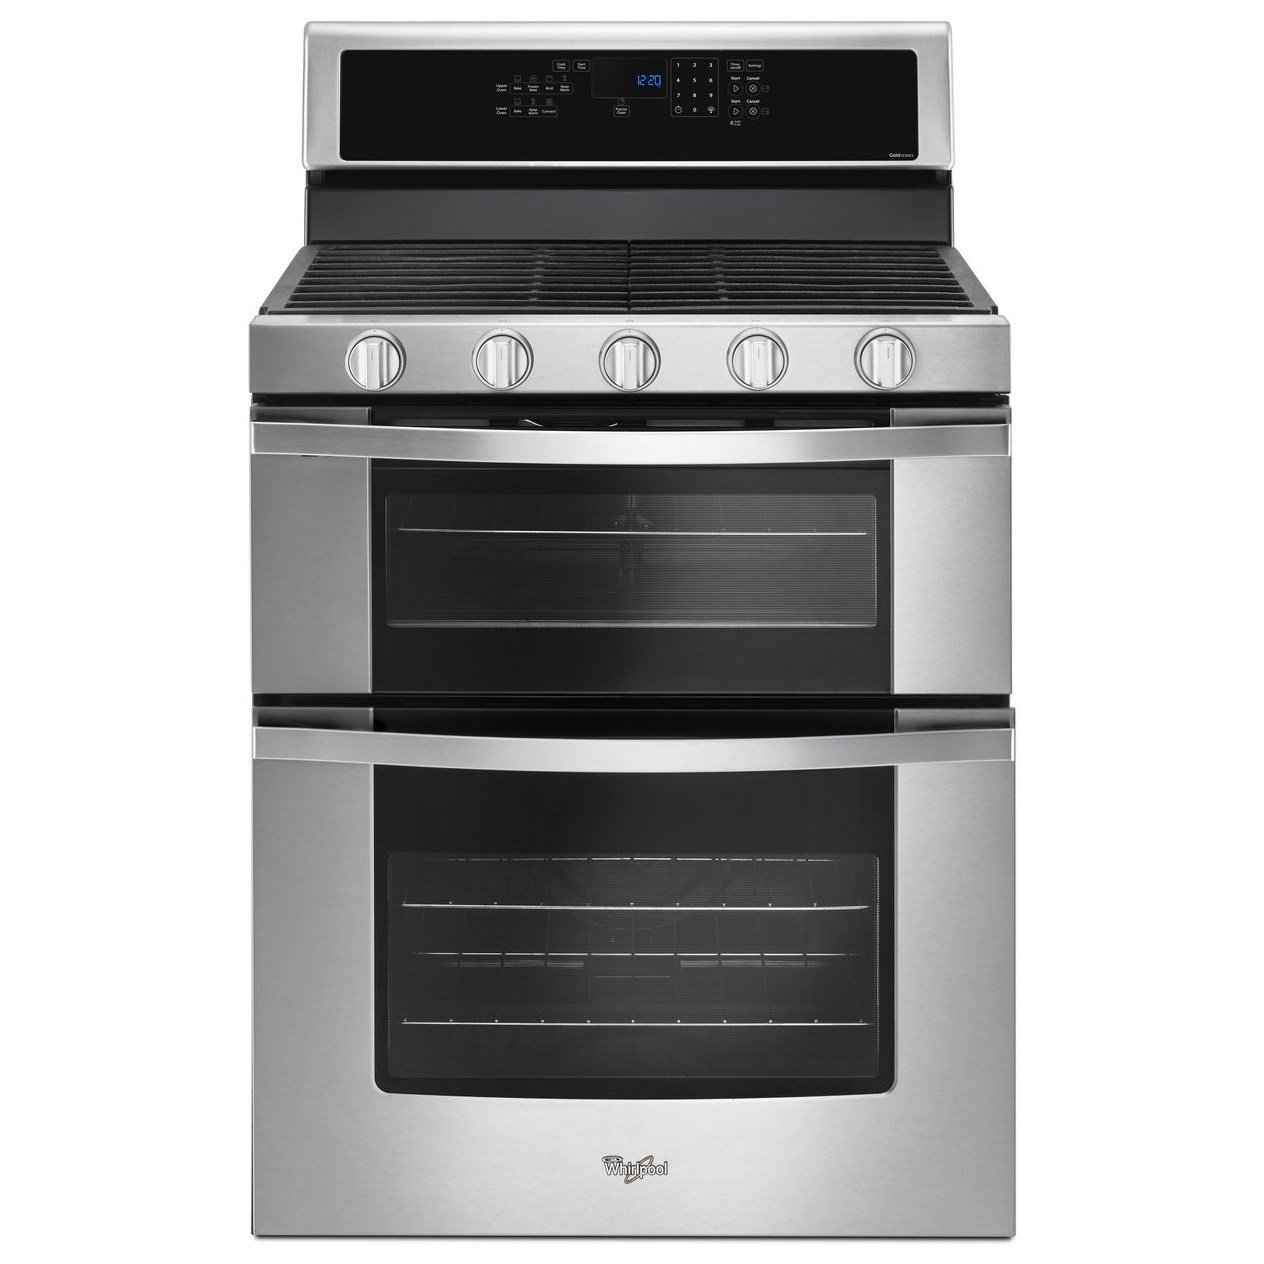 Whirlpool Wgg745s0fs6 0 Cu Ft Gas Double Oven Range With